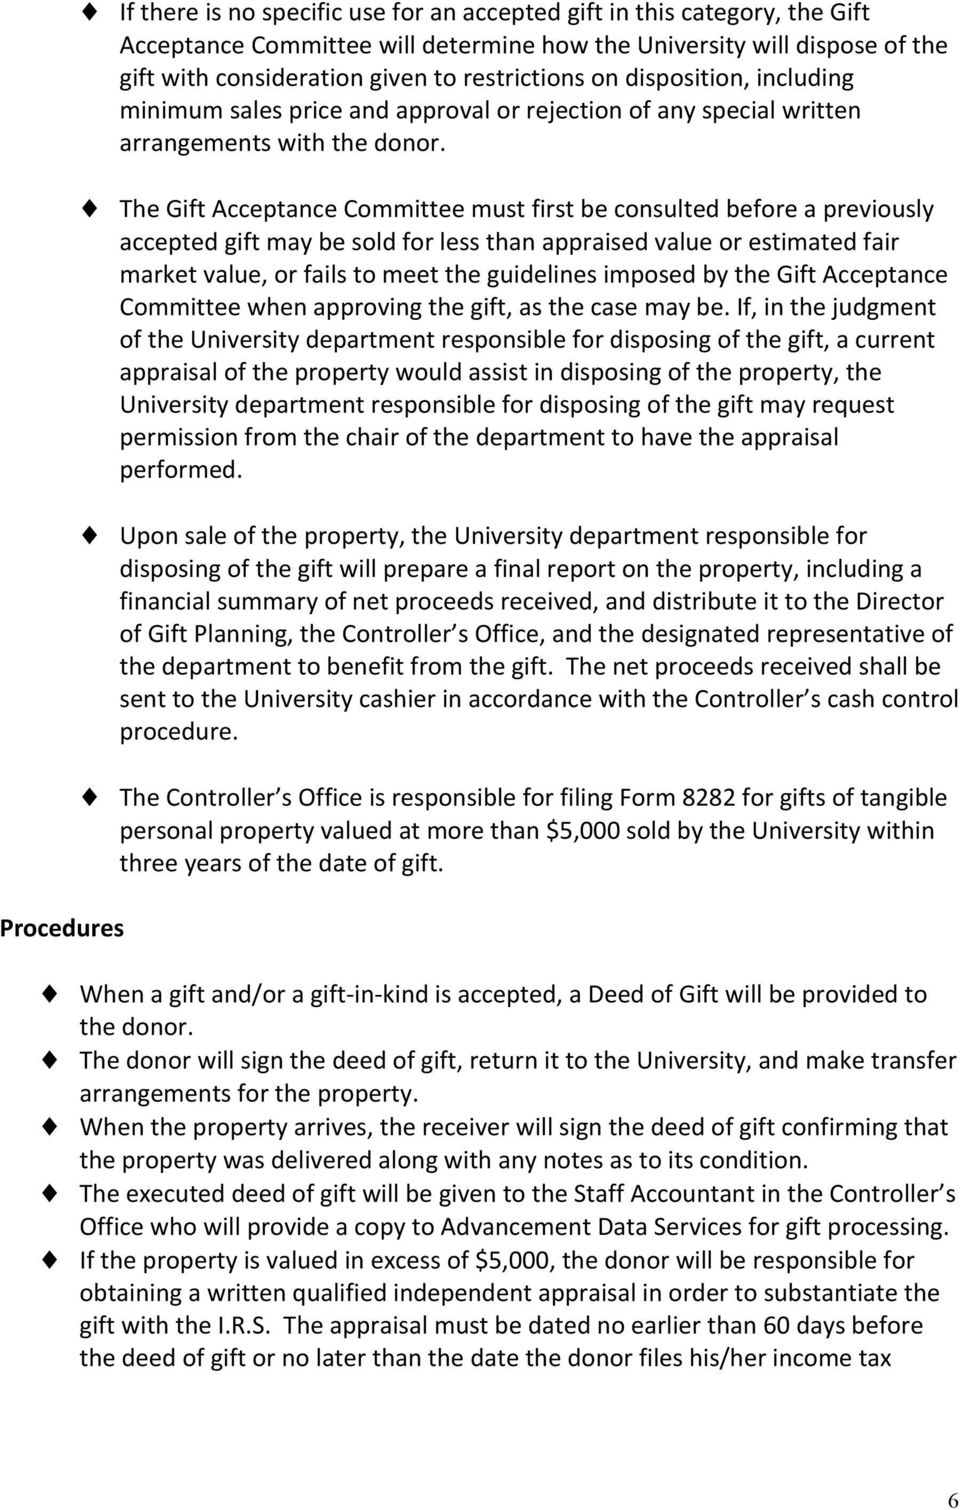 The Gift Acceptance Committee must first be consulted before a previously accepted gift may be sold for less than appraised value or estimated fair market value, or fails to meet the guidelines